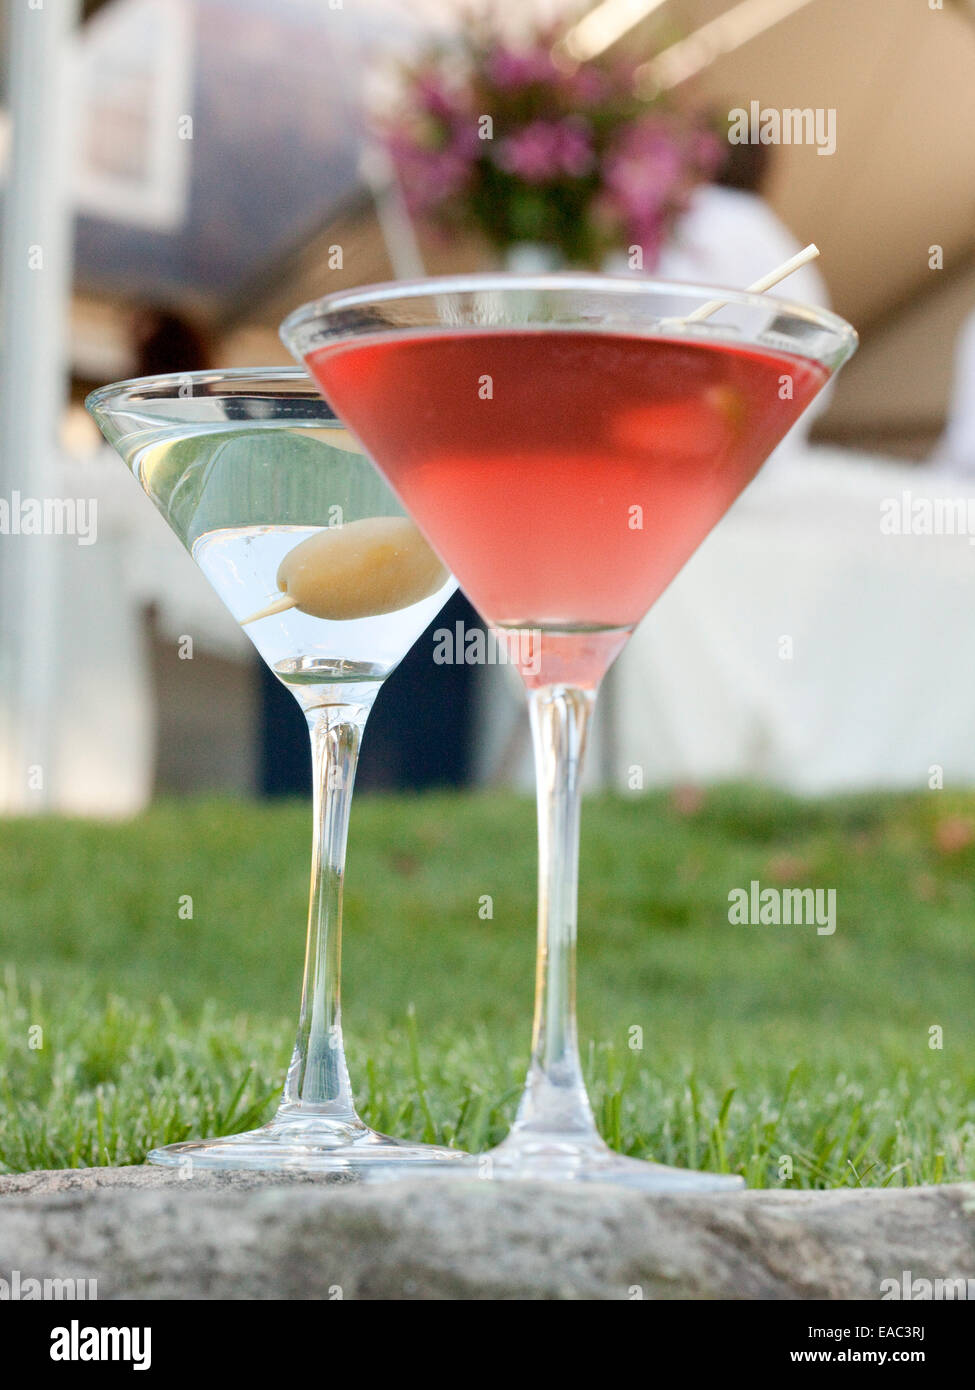 Cosmopolitan and Martini on lawn during garden cocktail reception - Stock Image